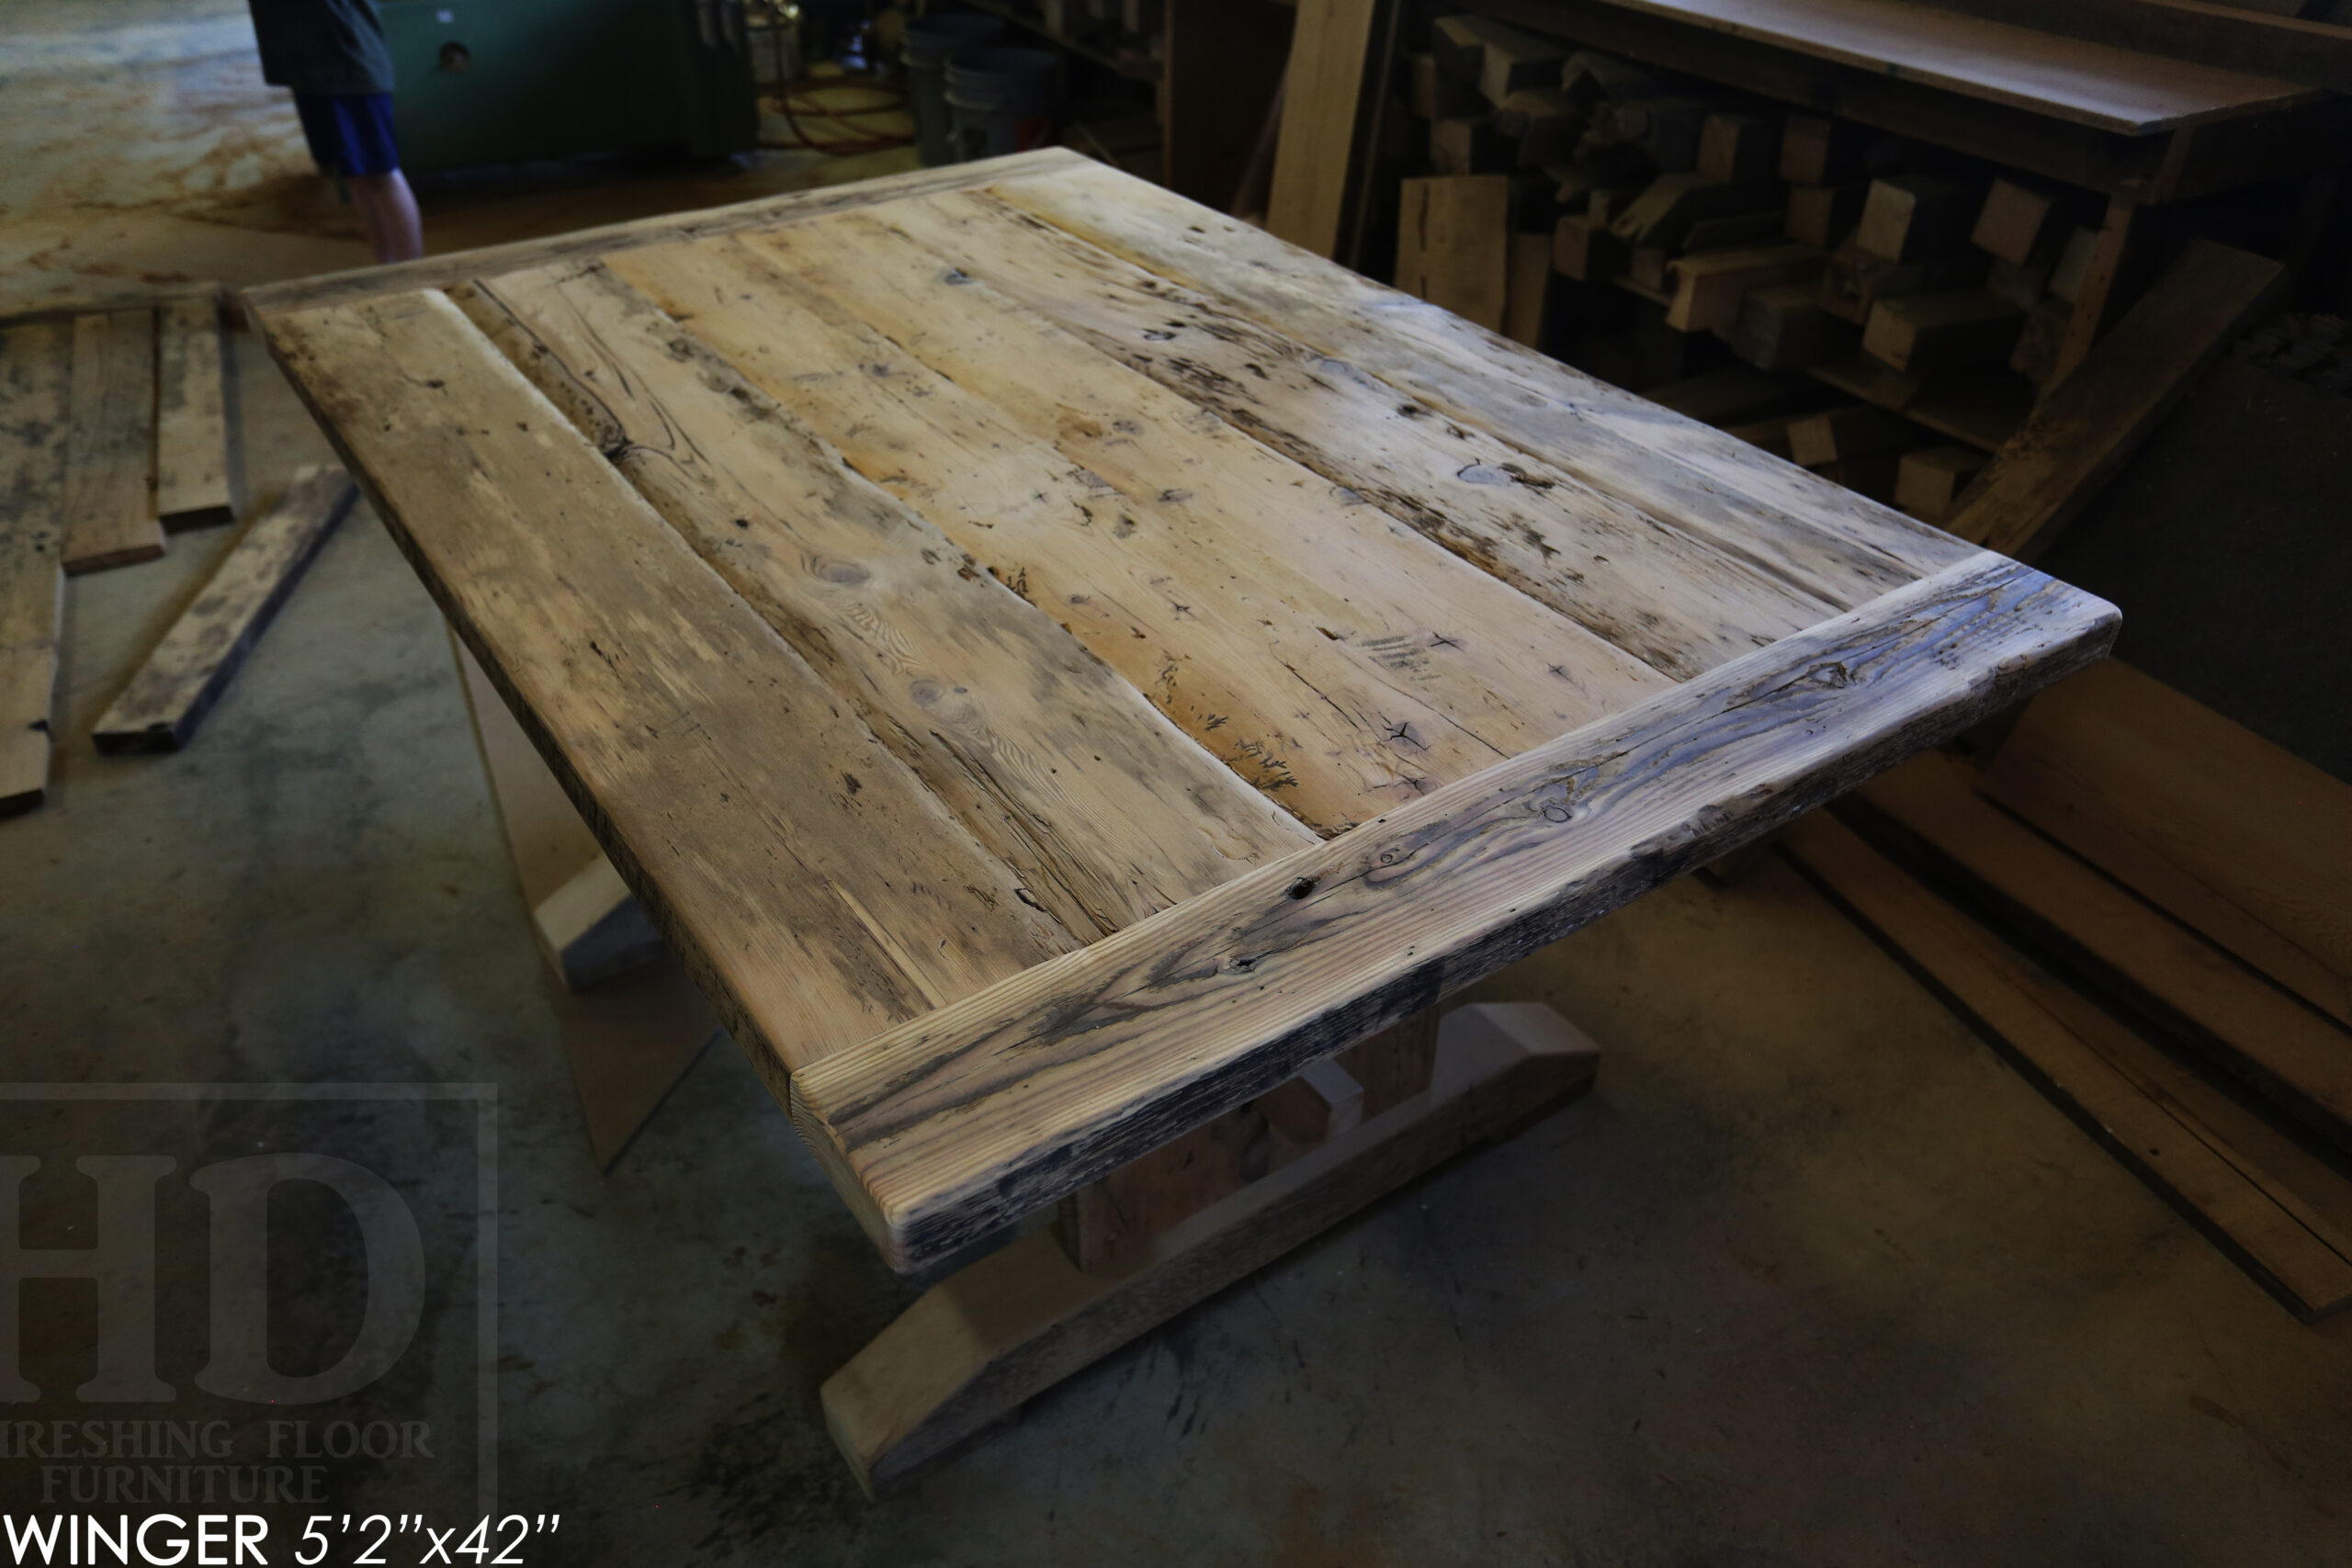 """5' 2"""" Reclaimed Wood Table we made for a Breslau, Ontario home - 42"""" wide - Trestle Base - Old Growth Hemlock Threshing Floor Construction - Original edges & distressing maintained - Premium epoxy + satin polyurethane finish - www.table.ca"""